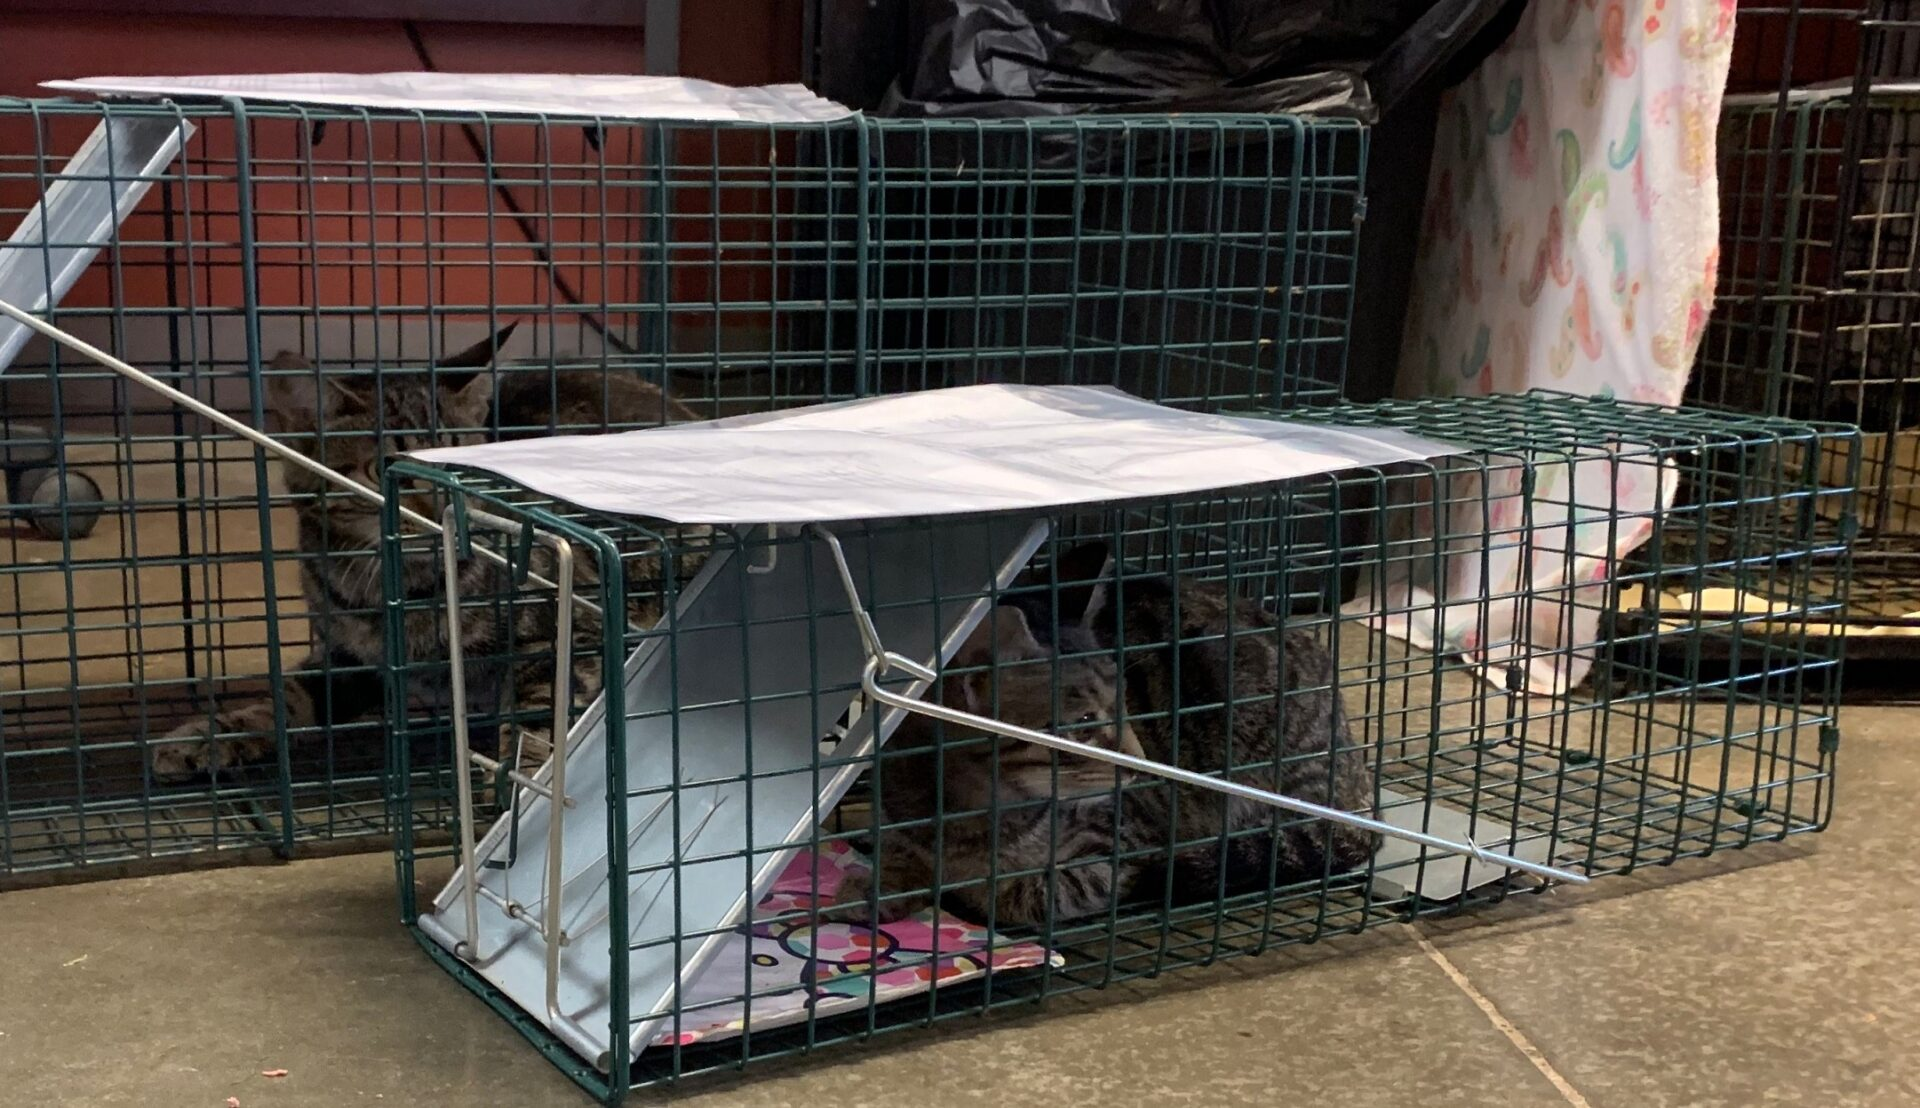 Standard catch-and-release traps are used in the trap-neuter-release program. (Source: Pa. SPCA)